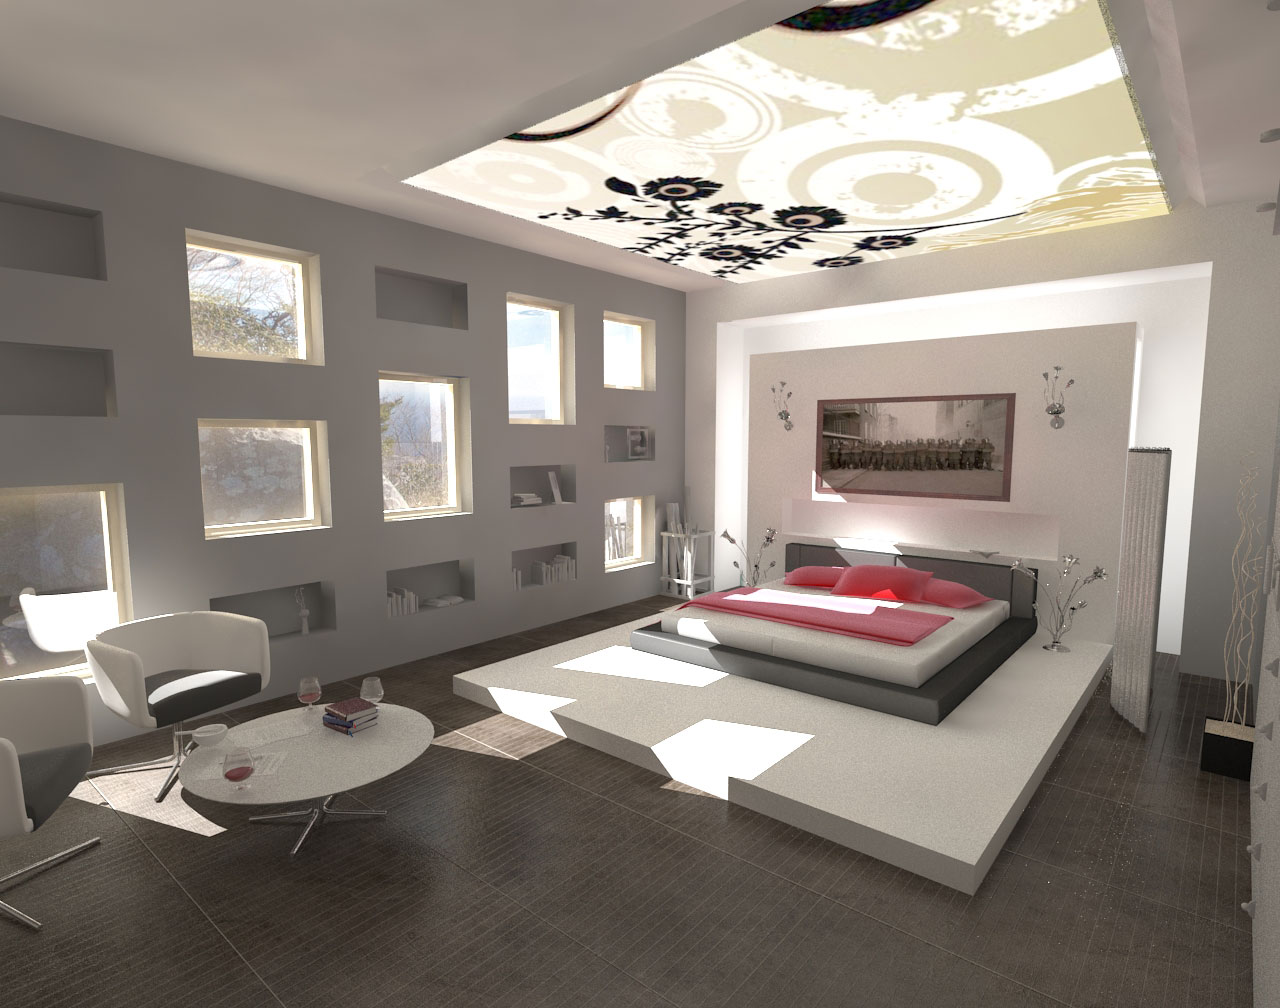 Incredible Modern Bedroom Interior Design Ideas 1280 x 1008 · 183 kB · jpeg